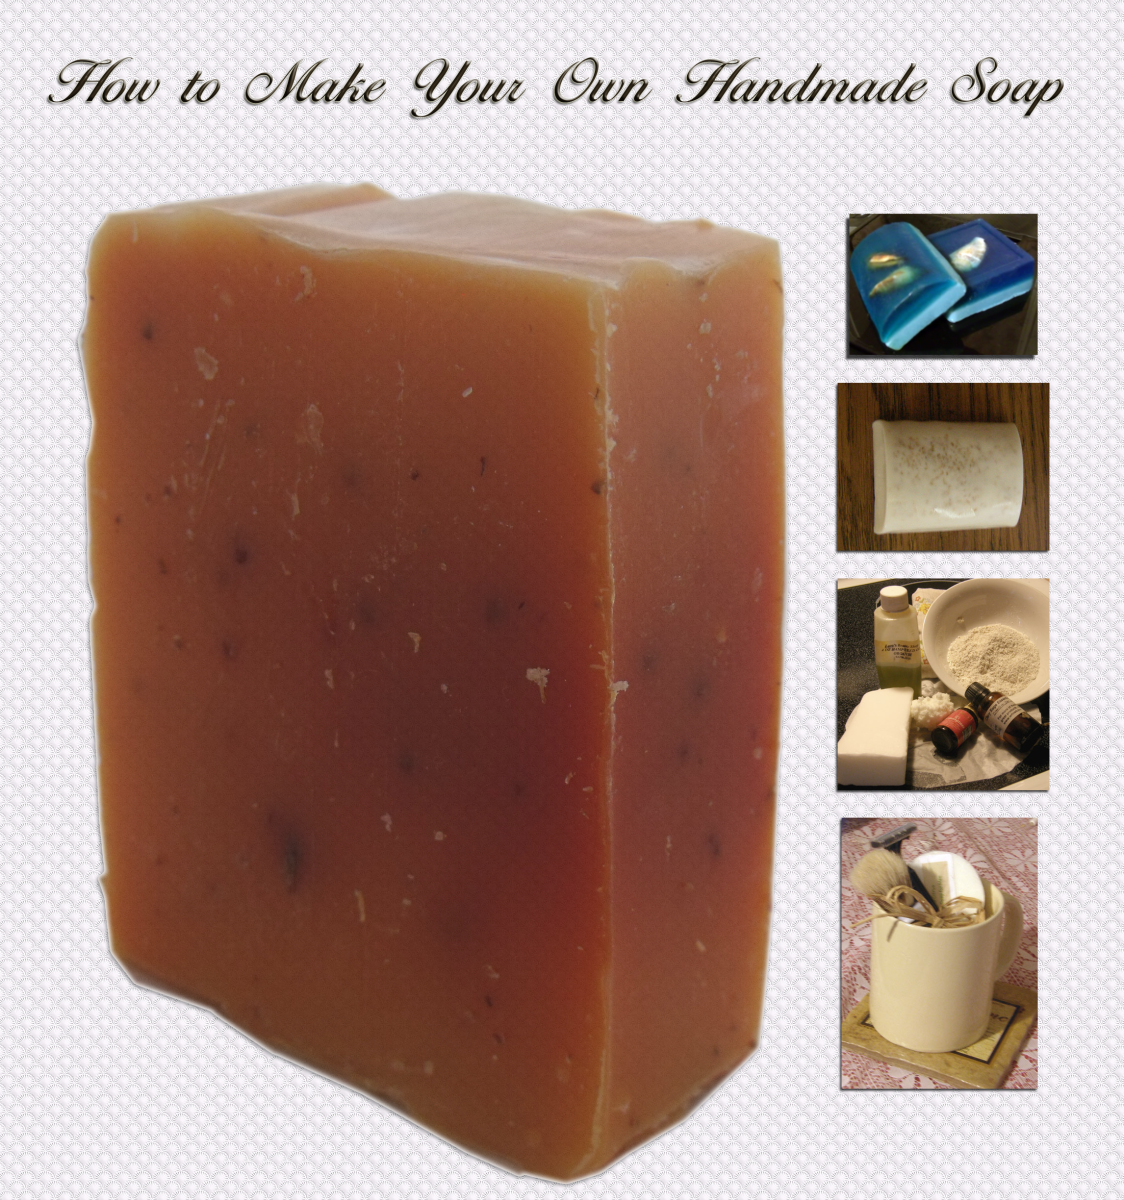 how to make handmade soaps how to make your own handmade soap feltmagnet 1261